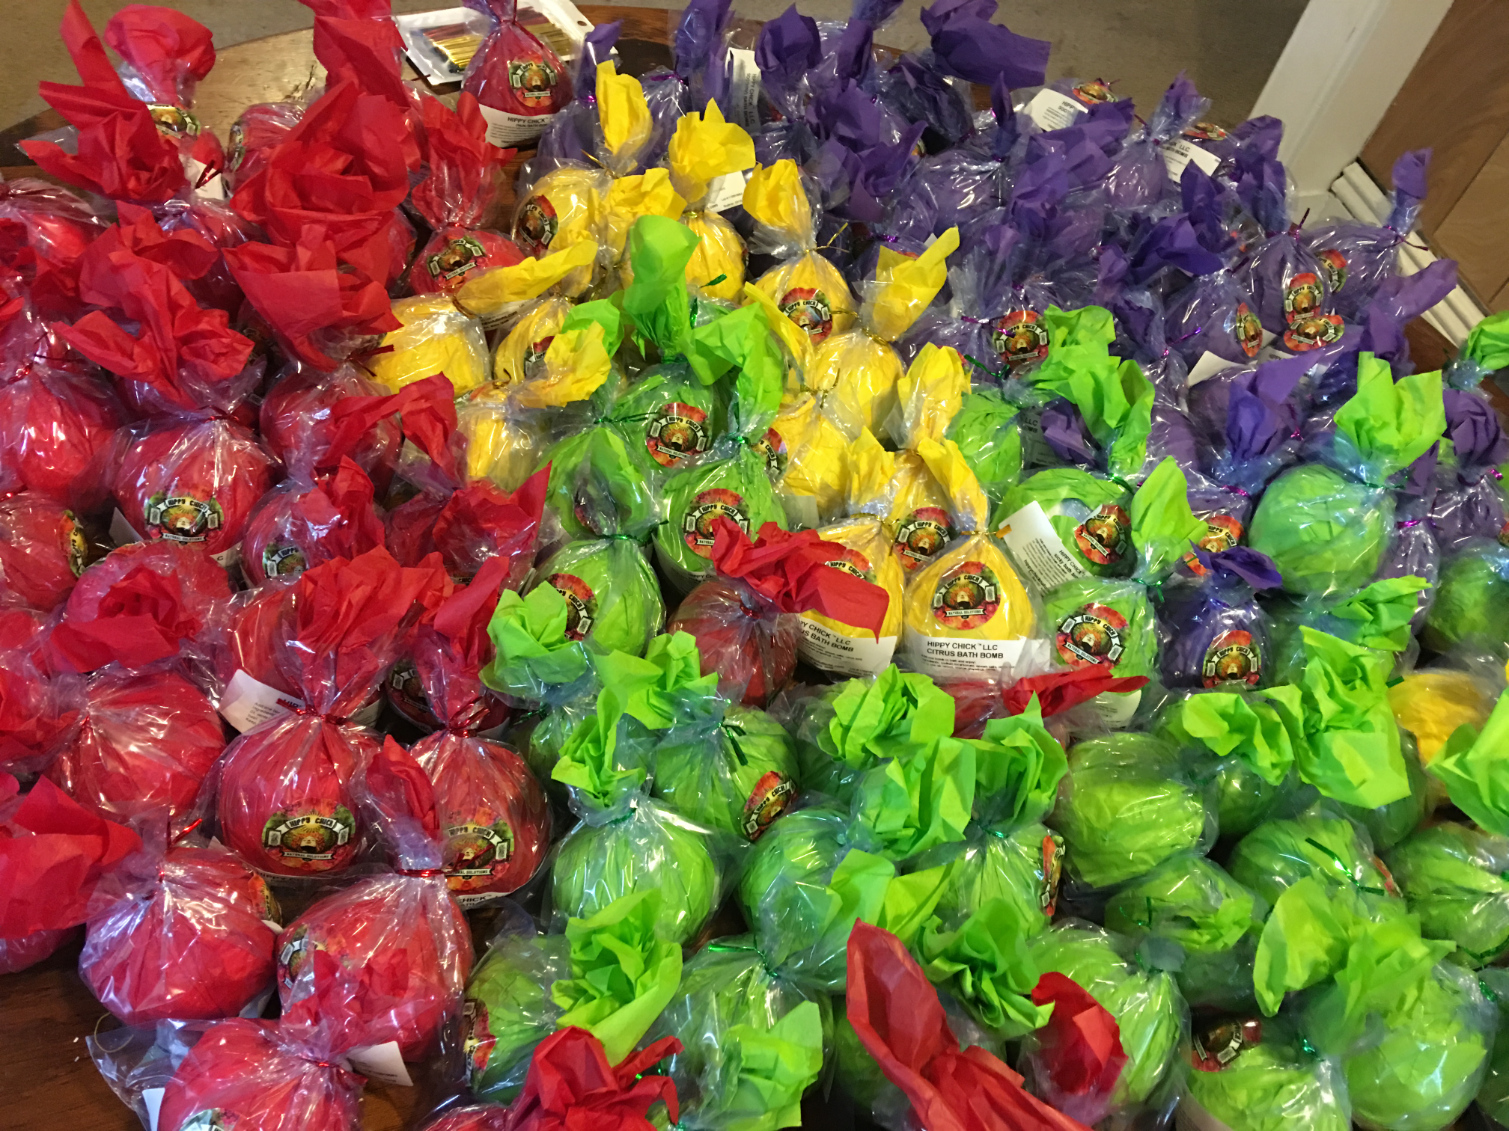 Large amount of wrapped assorted bath bombs